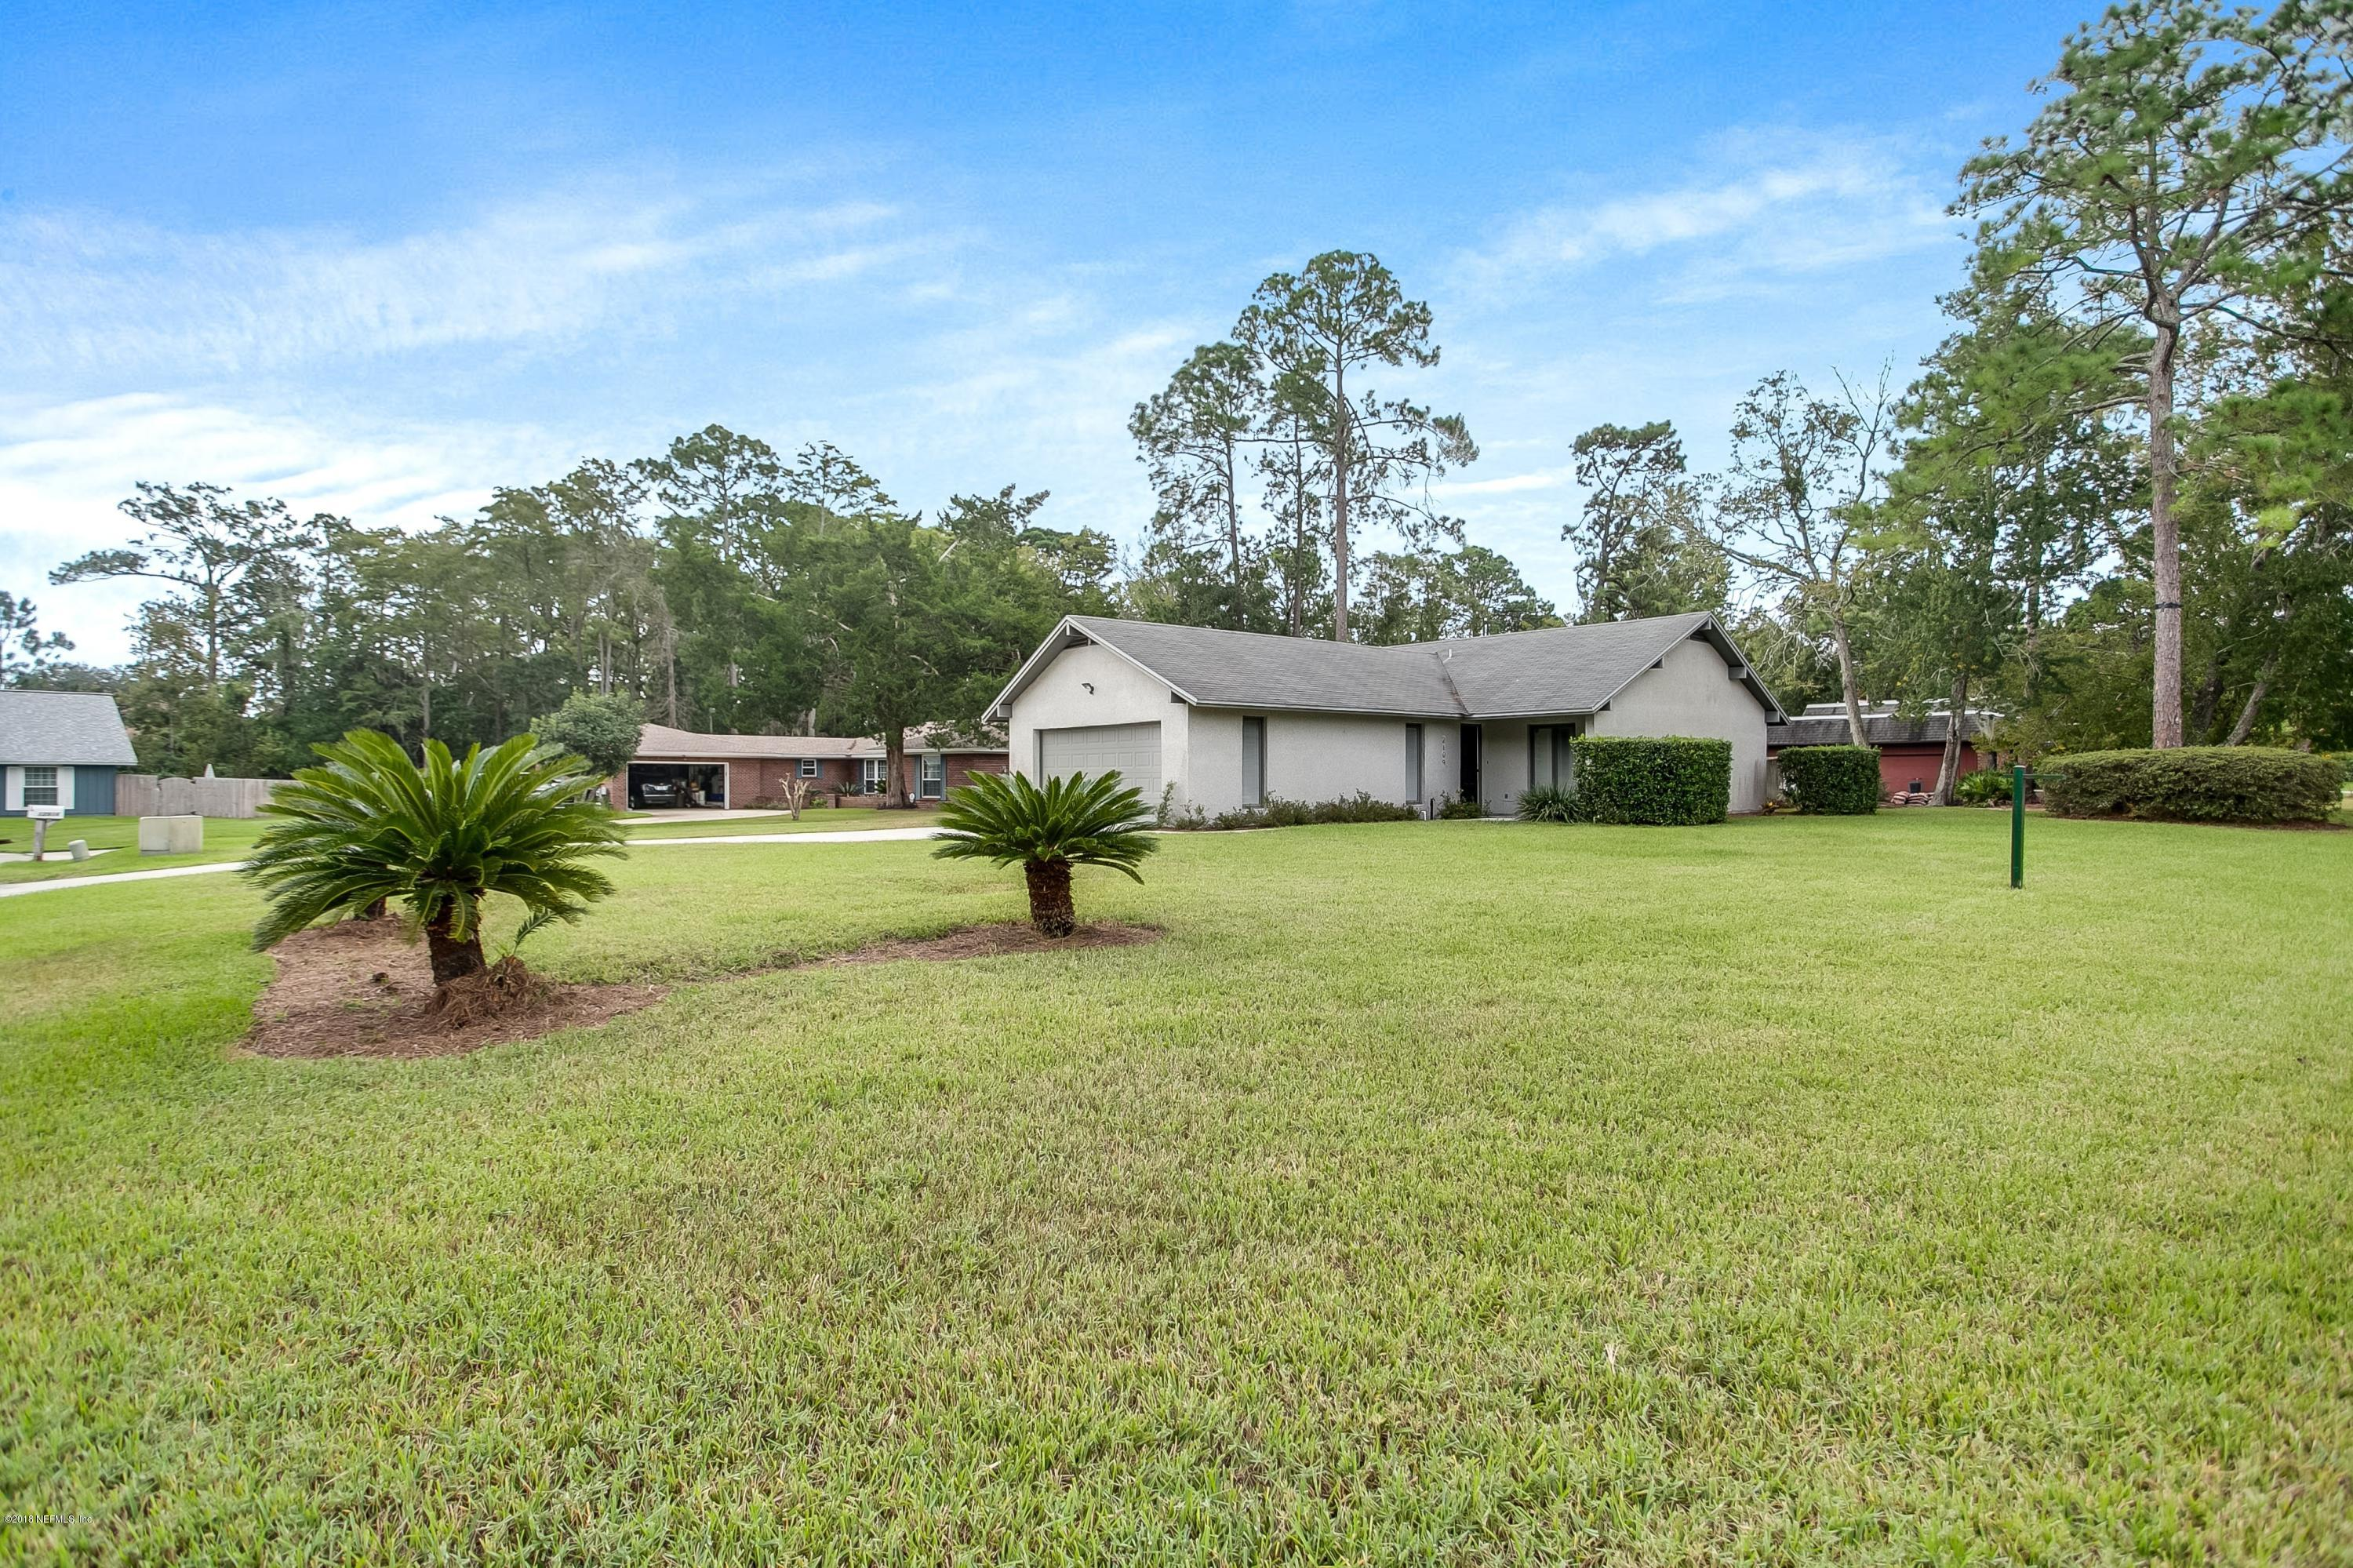 2109 THE WOODS, JACKSONVILLE, FLORIDA 32246, 3 Bedrooms Bedrooms, ,2 BathroomsBathrooms,Residential - single family,For sale,THE WOODS,965416